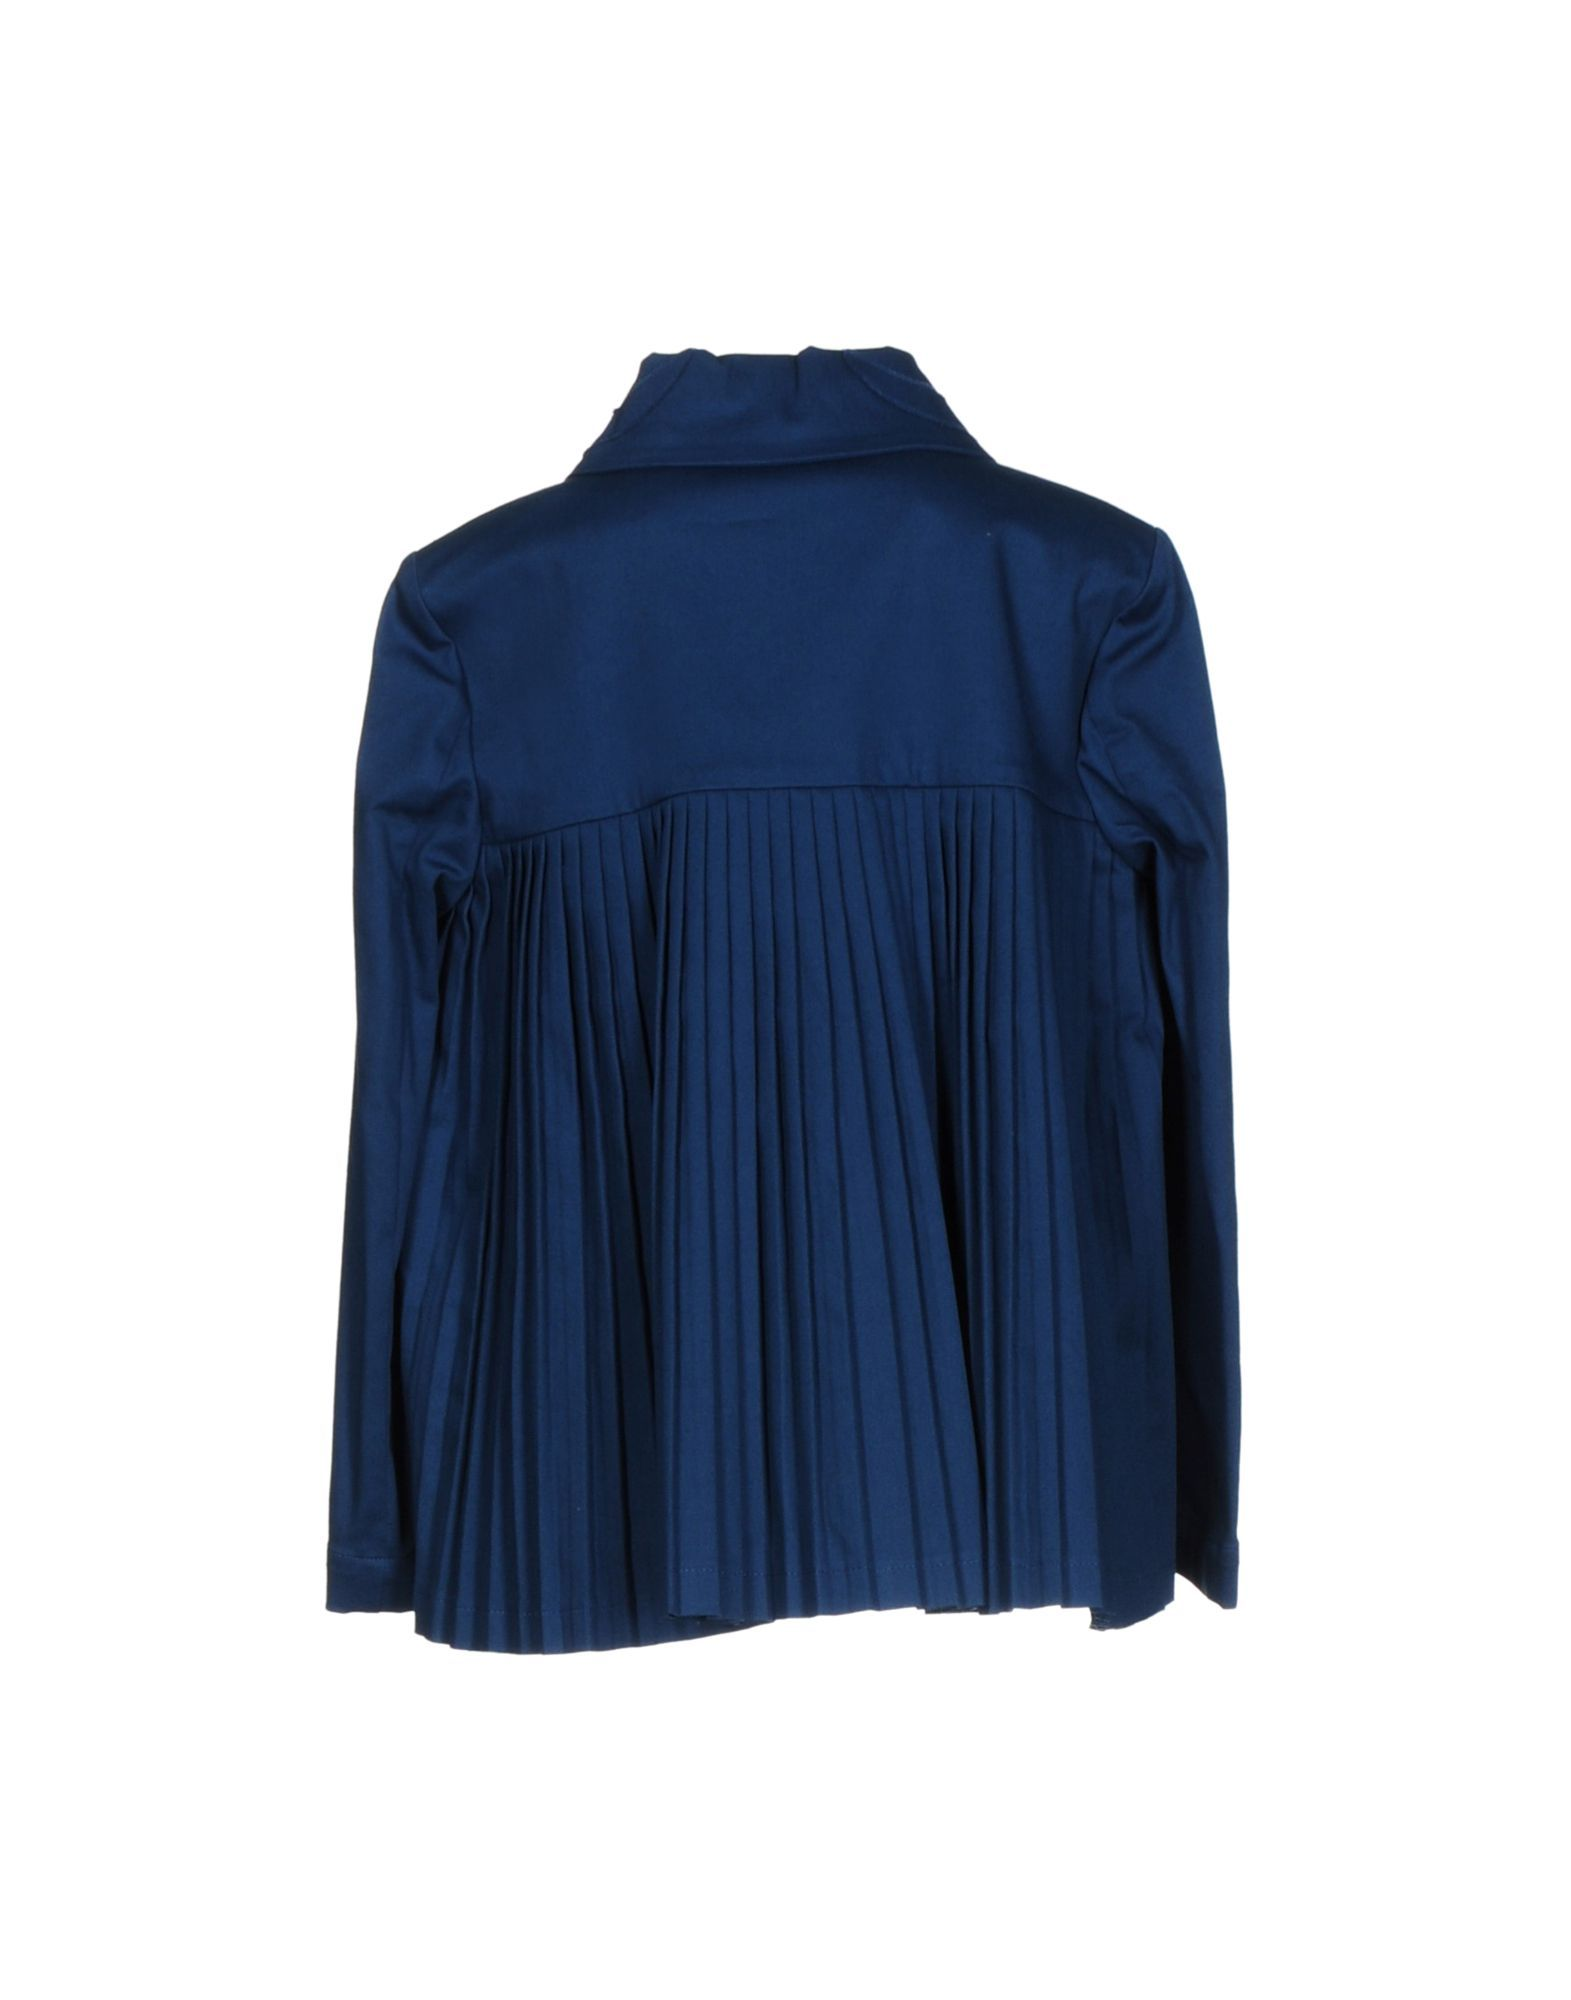 L' Autre Chose Blue Cotton Jacket